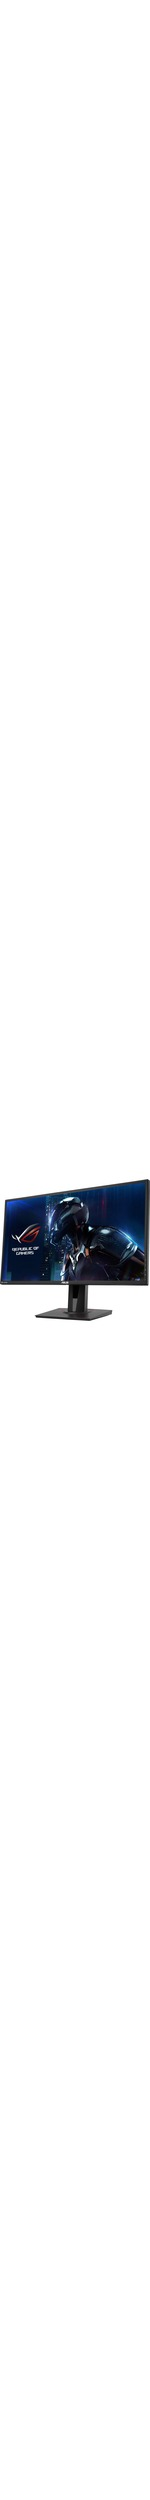 Asus ROG SWIFT PG278QE 27And#34; WQHD Gaming LCD Monitor - 16:9 - Black